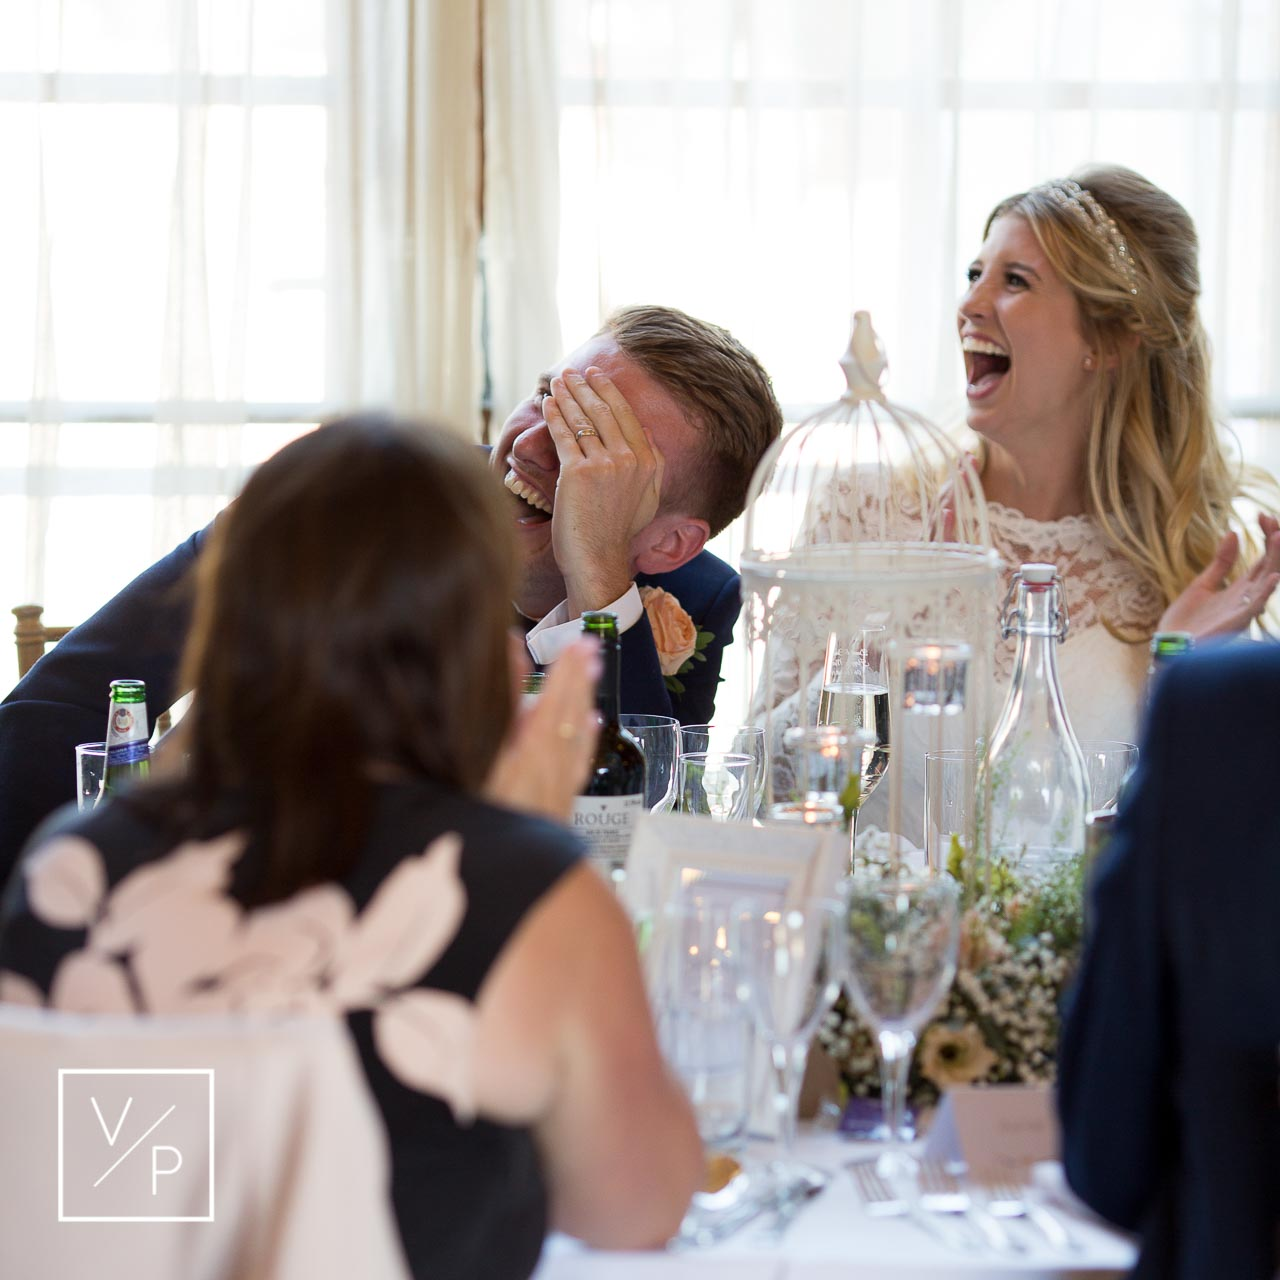 Christina and Dan laughing during the speeches - The Great Barn wedding videographer Veiled Productions